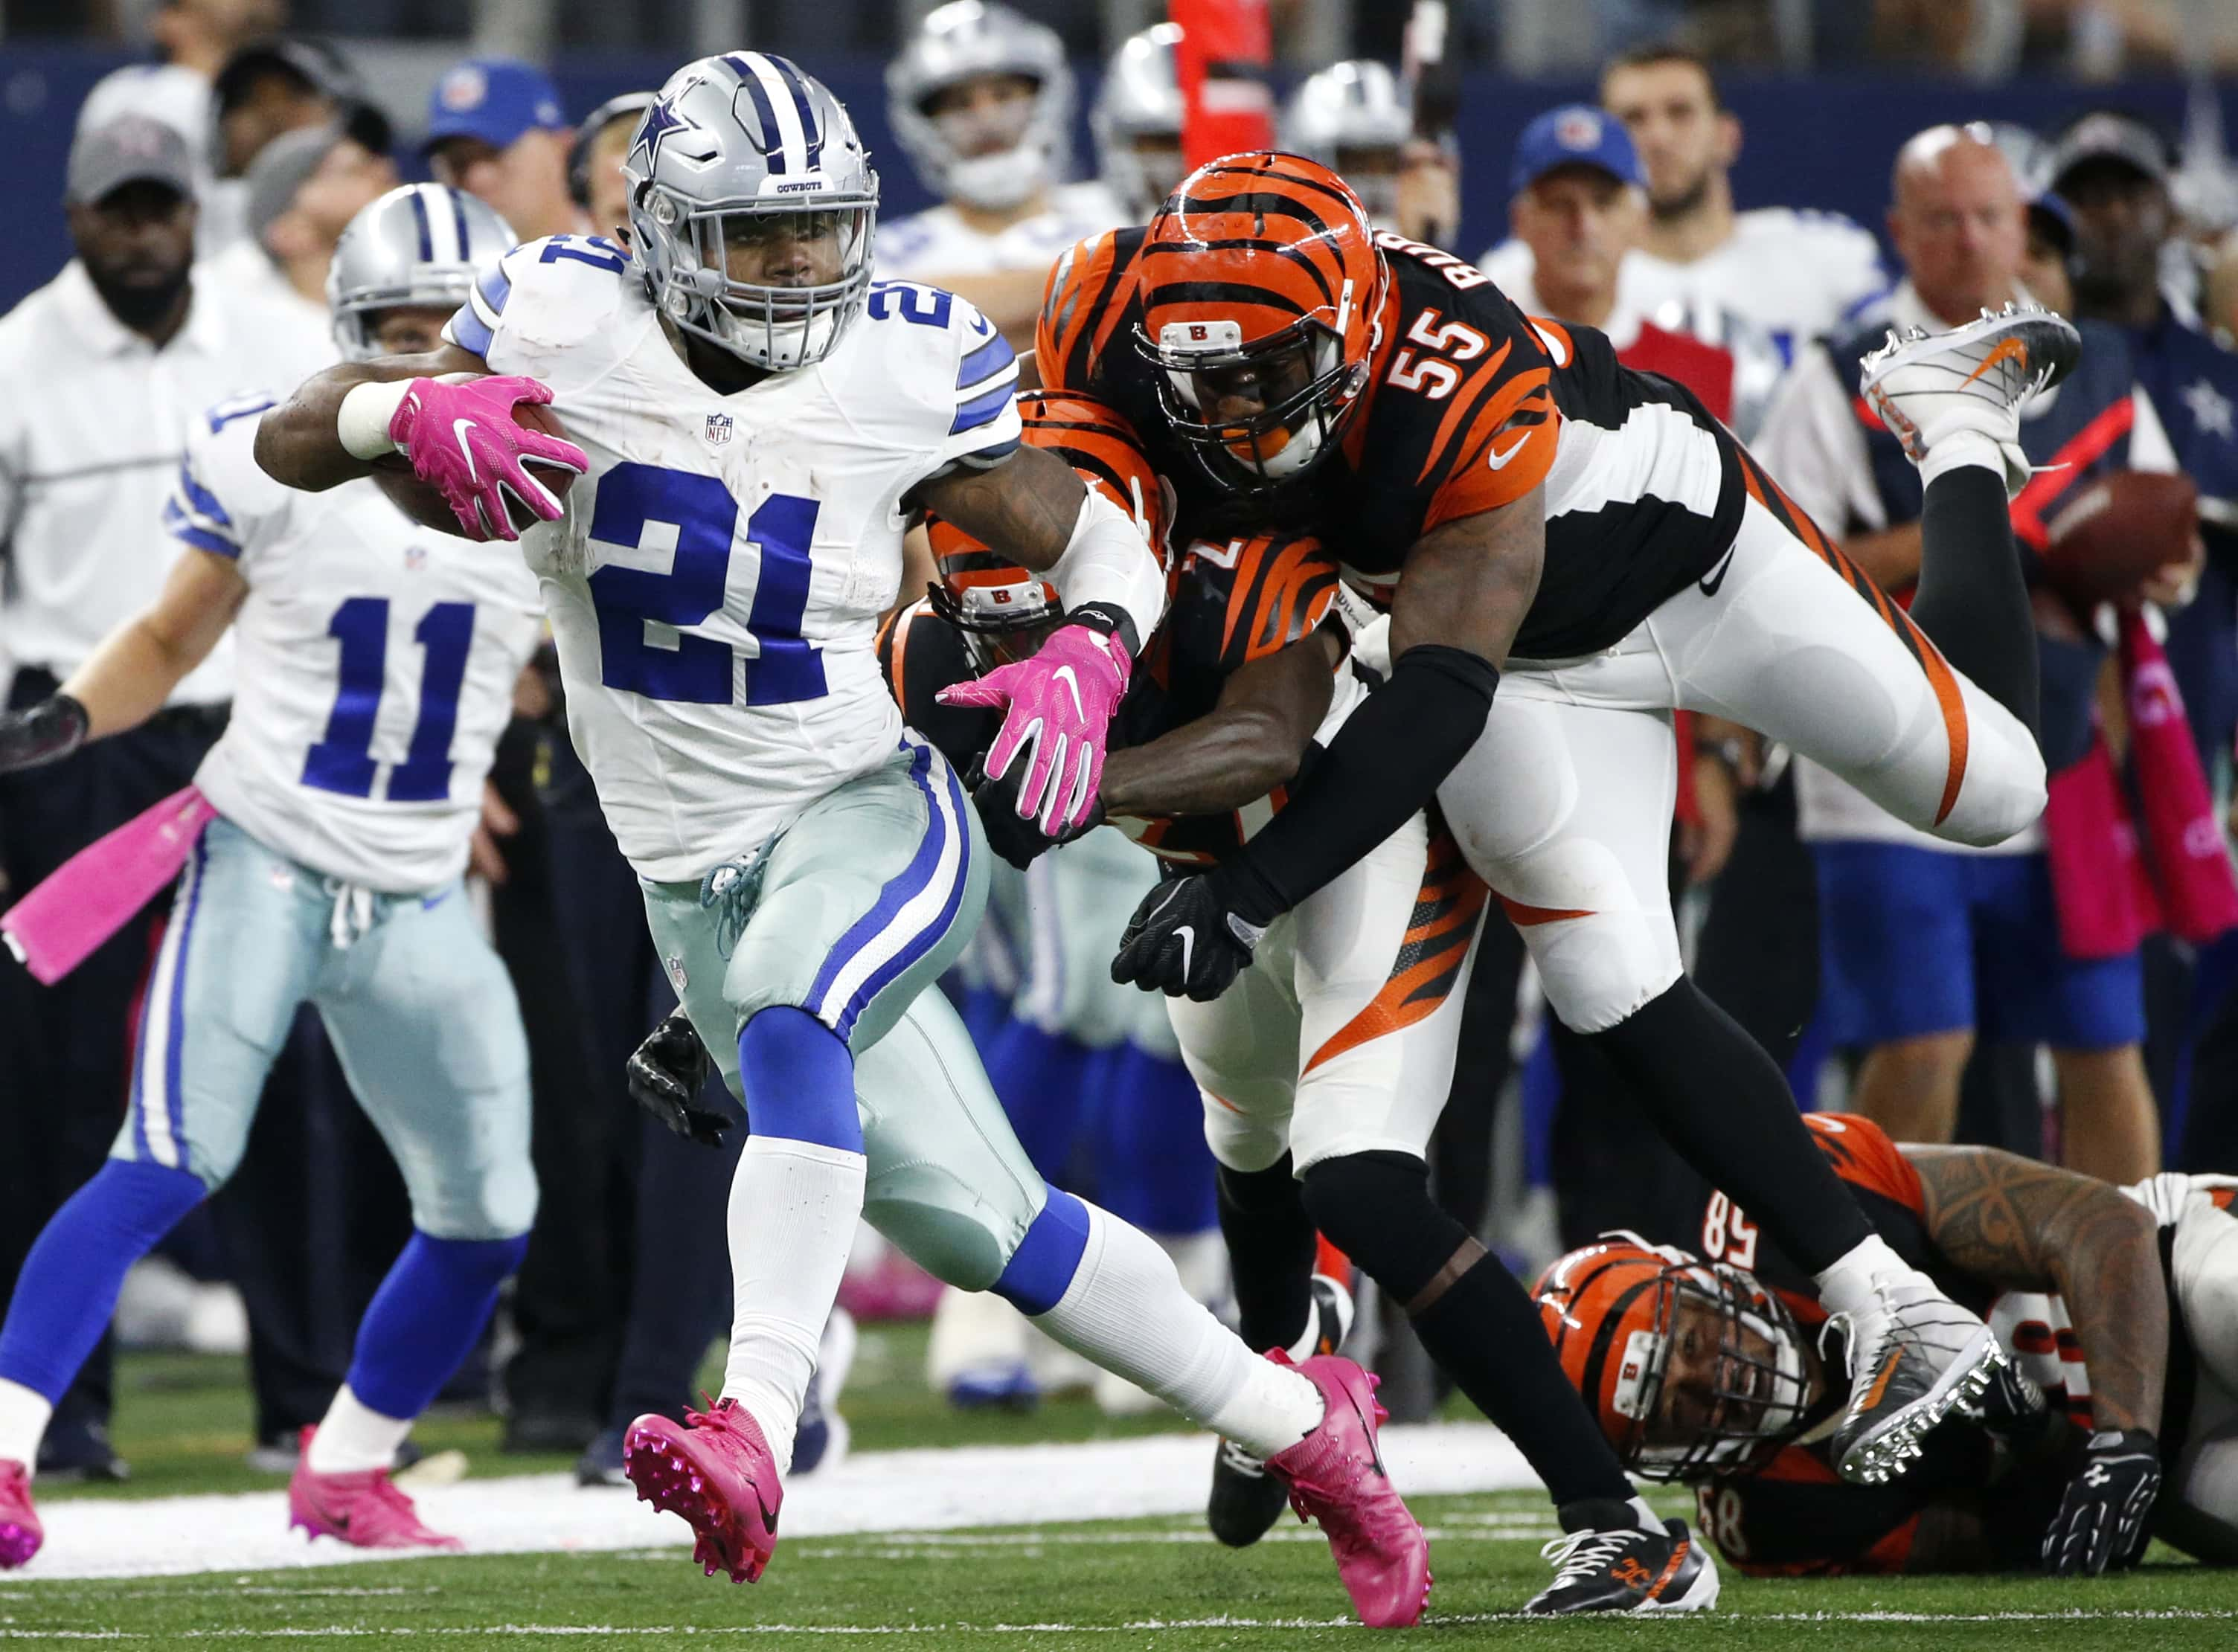 Bengals season suddenly in disarray